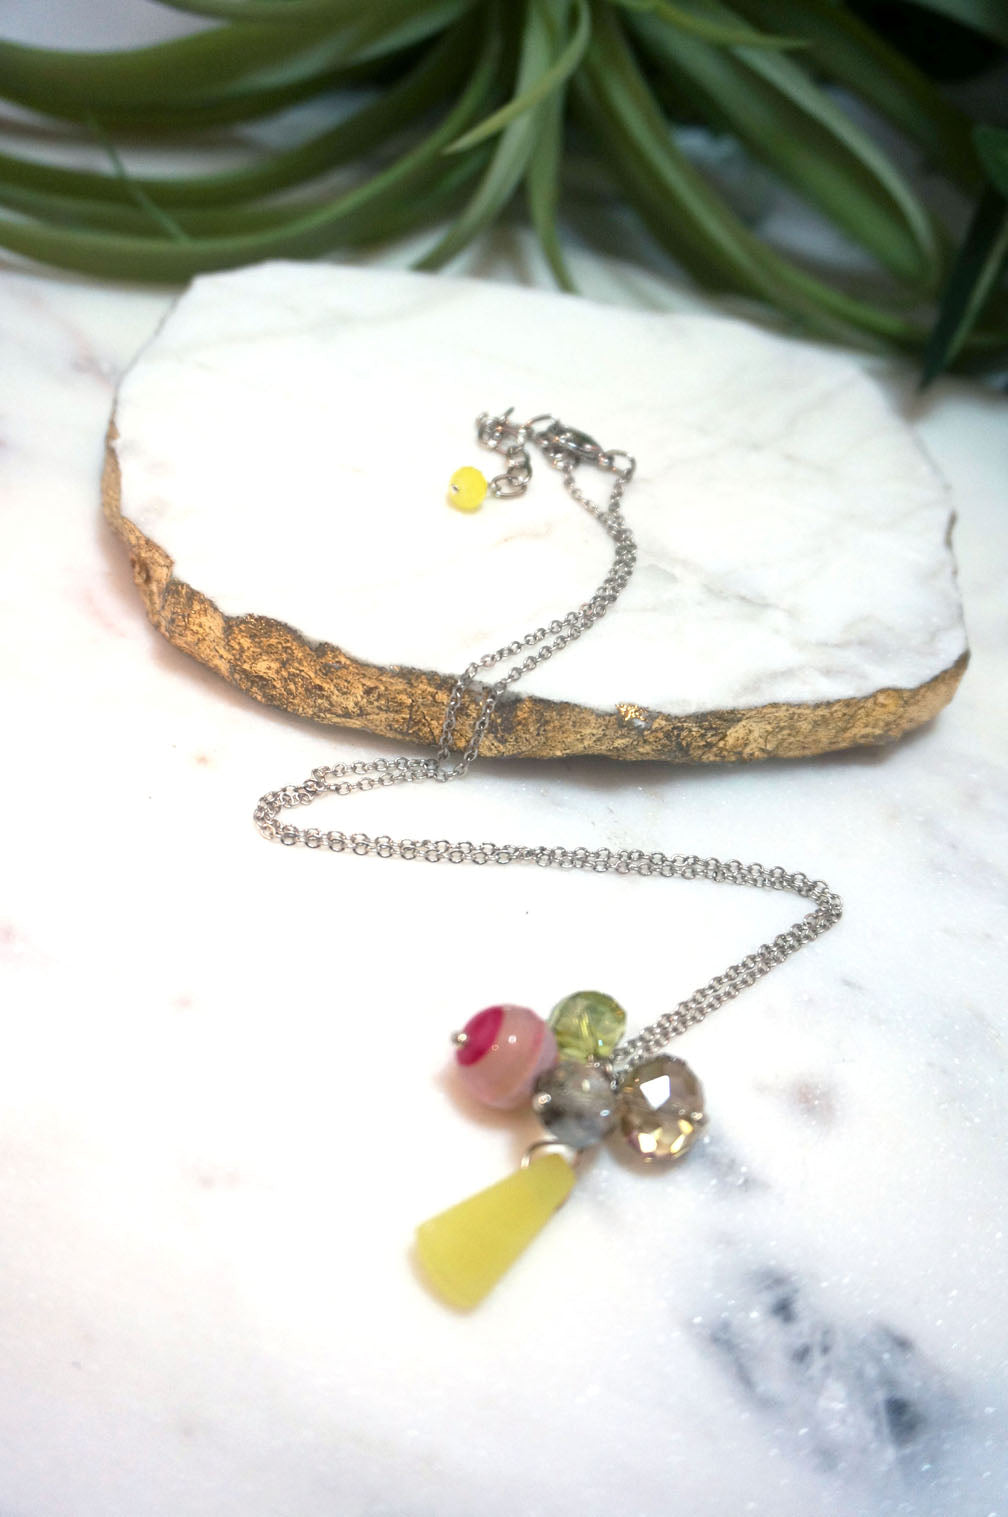 honeybunch necklace - HB-001-NL